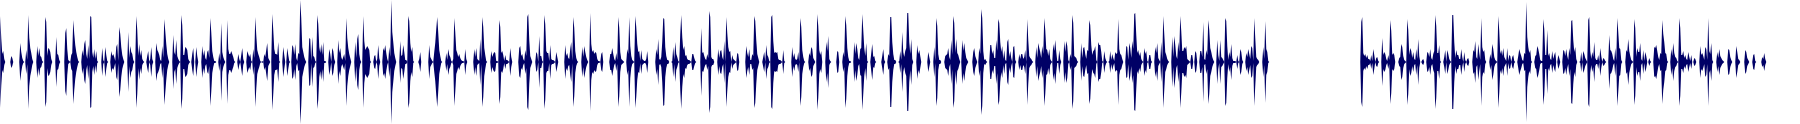 waveform of track #68988